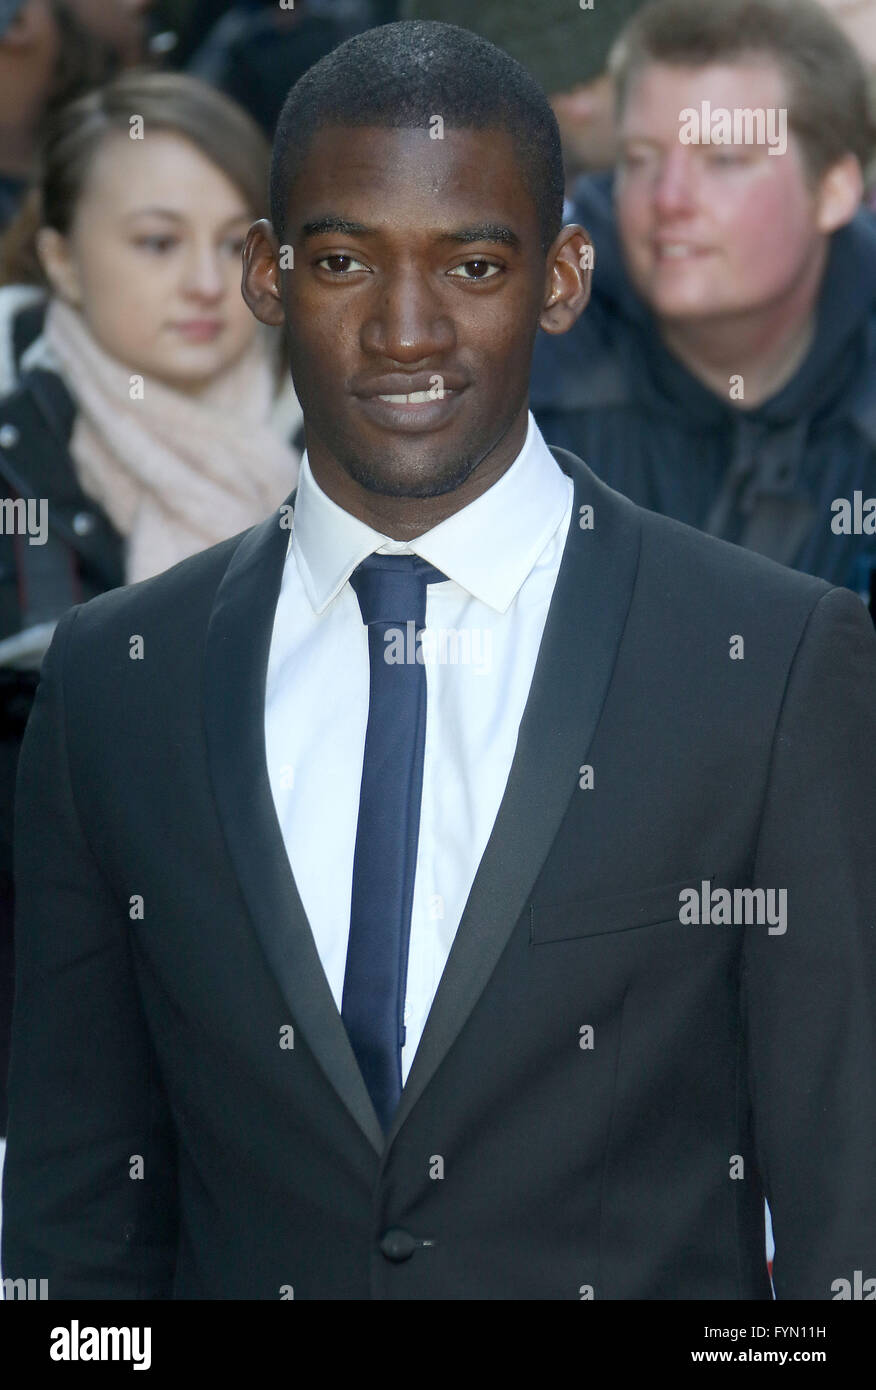 March 20, 2016 - Malachi KIrby attending 'Jameson Empire Awards 2016' at Grosvenor House Hotel in London, - Stock Image